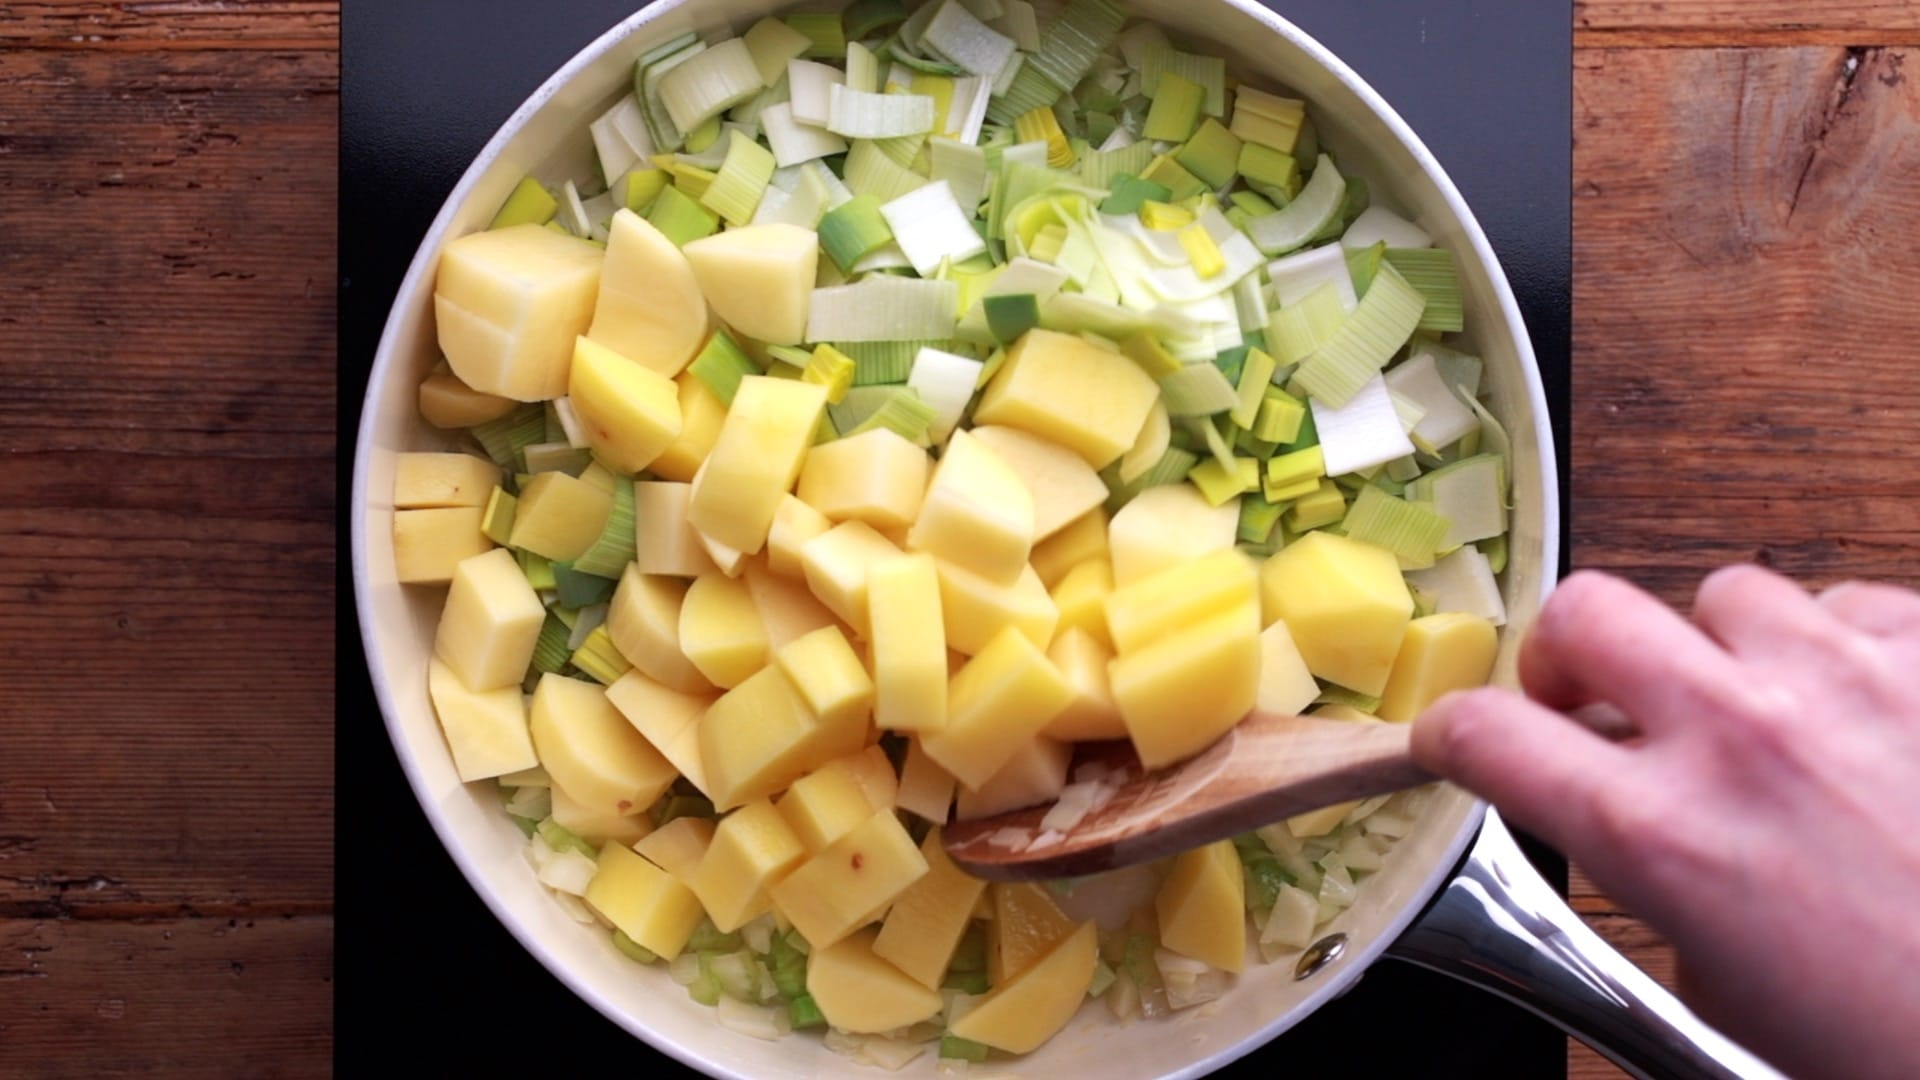 chopped leeks and cubed potatoes added to pan